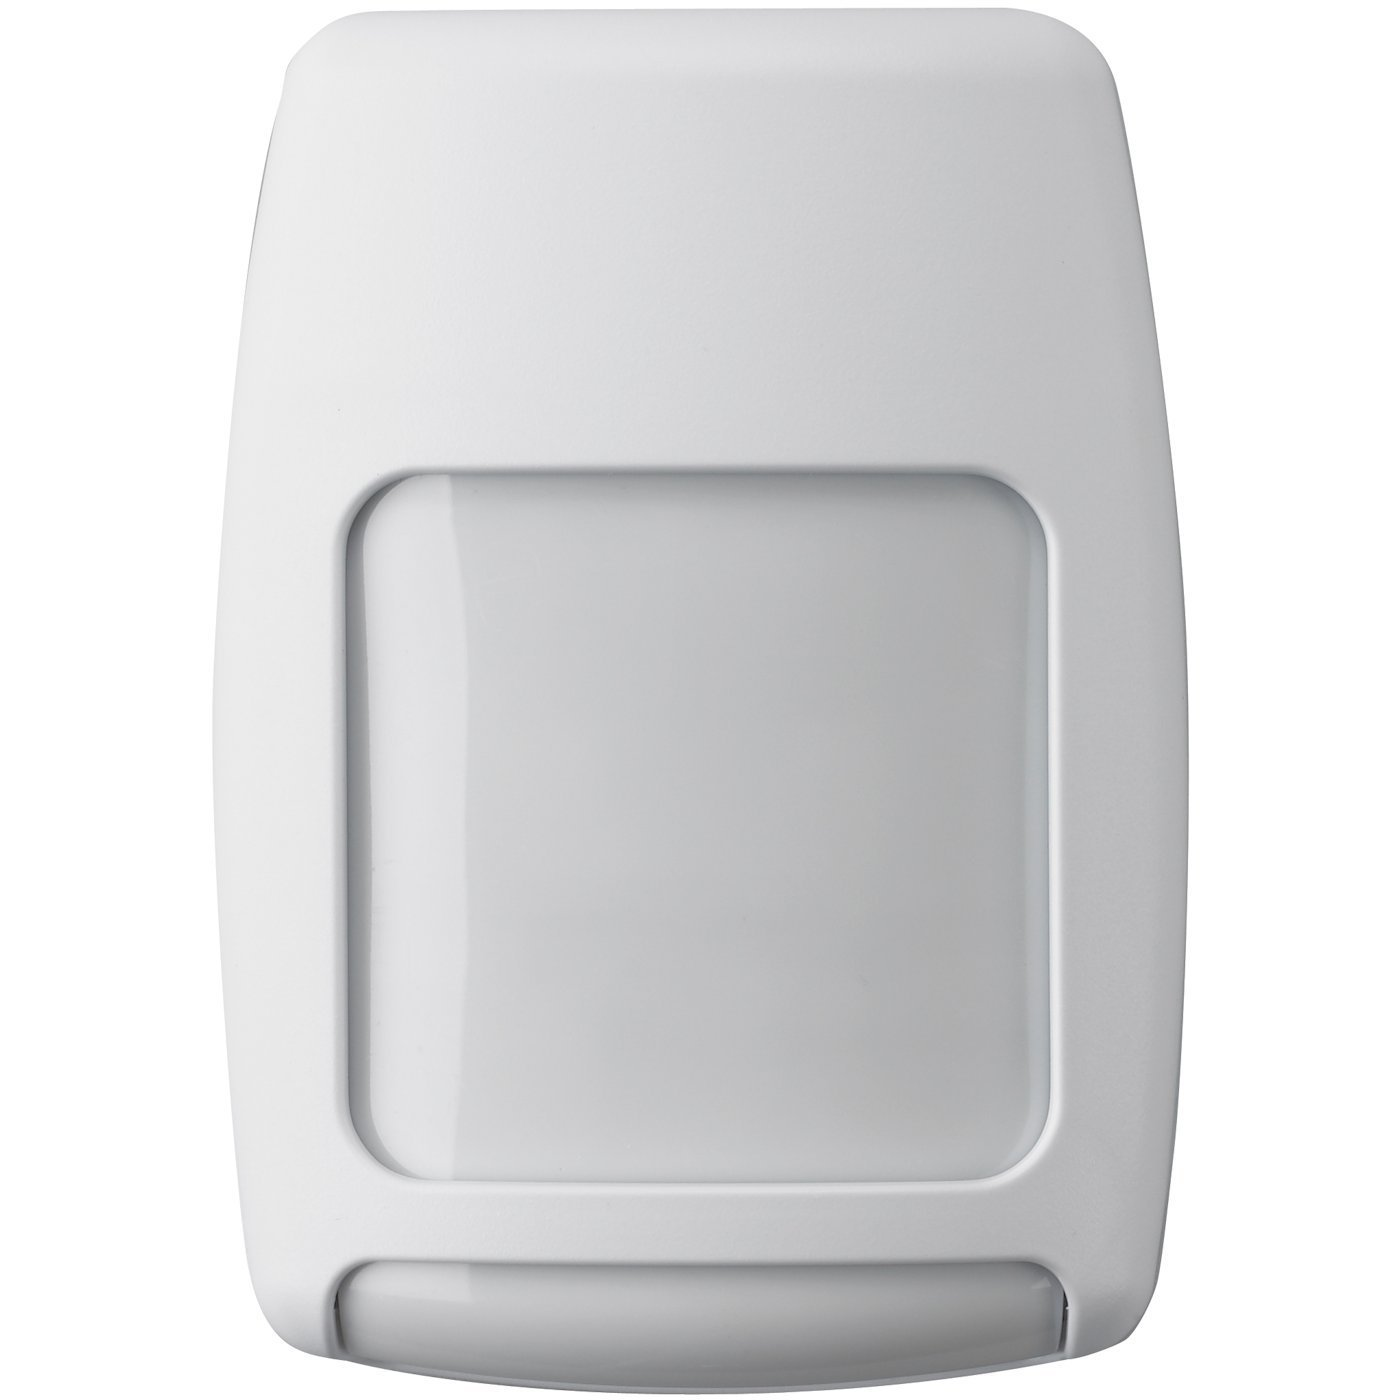 Honeywell Intrusion Wireless PIR